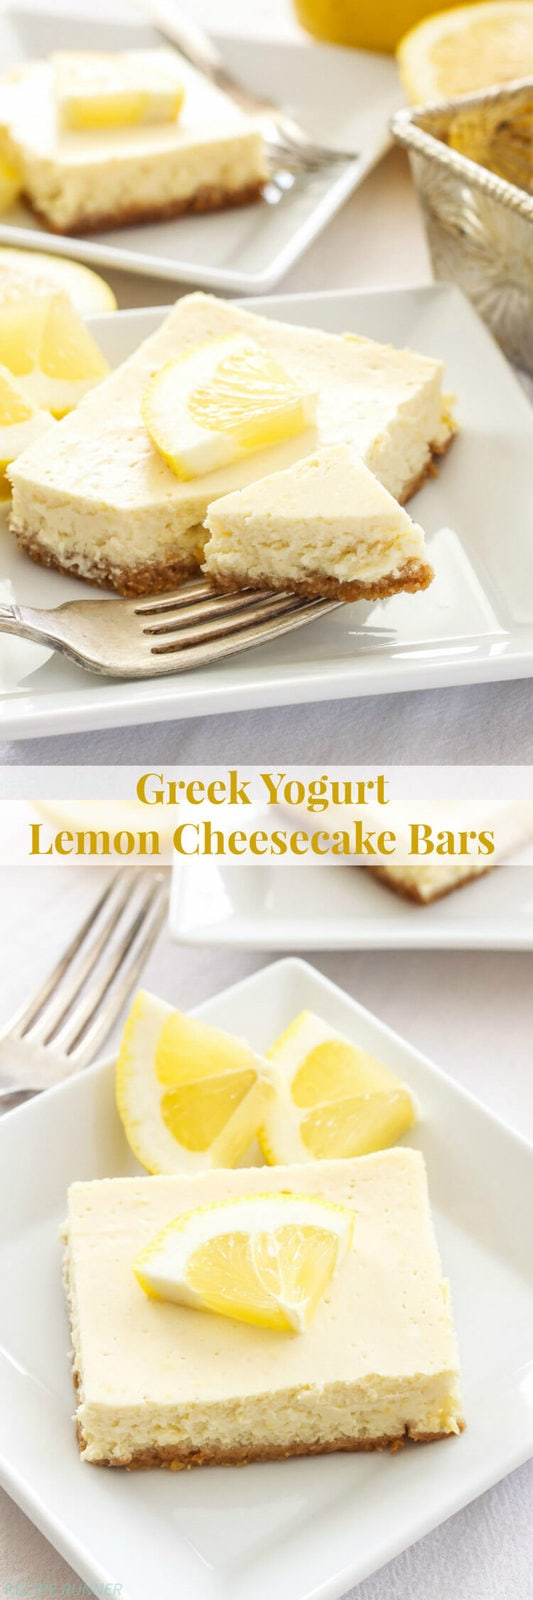 Greek yogurt lemon cheesecake bars spoonful of flavor greek yogurt lemon cheesecake bars lightened up creamy and bursting with fresh lemon flavor forumfinder Image collections